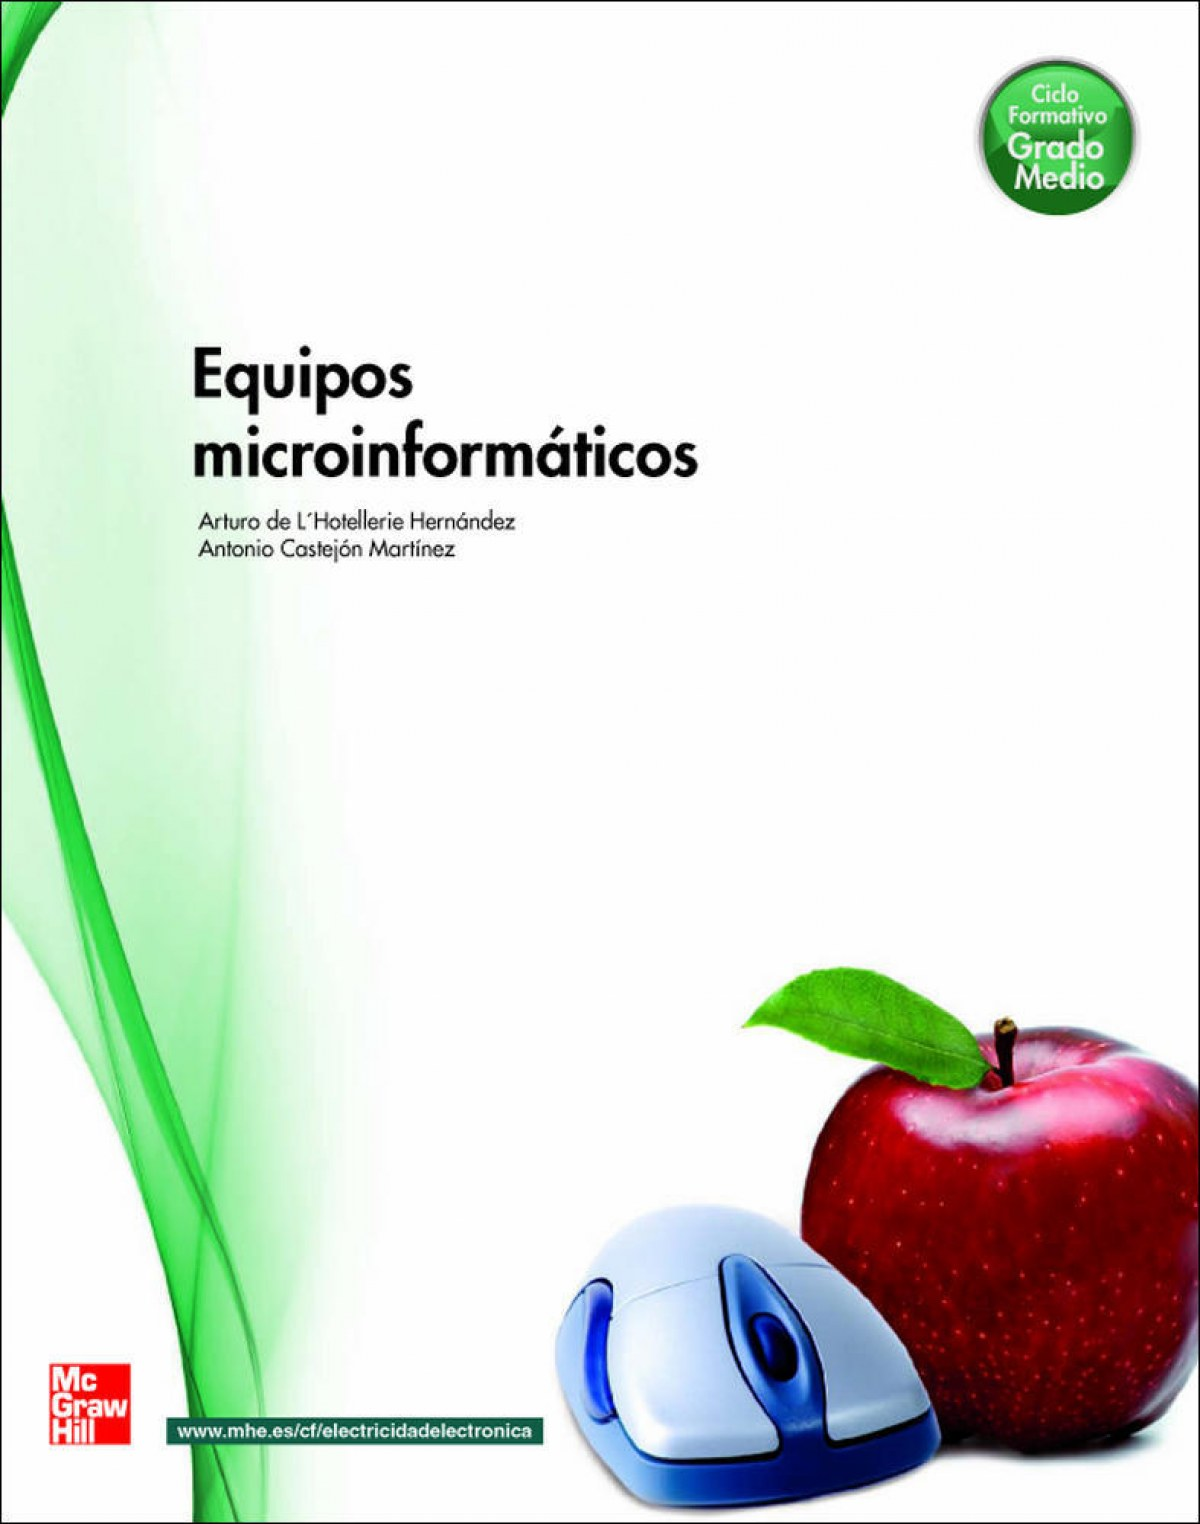 (10).(g.m).equipos microinformaticos (inst.telecomunic.(151) - Hotellerie